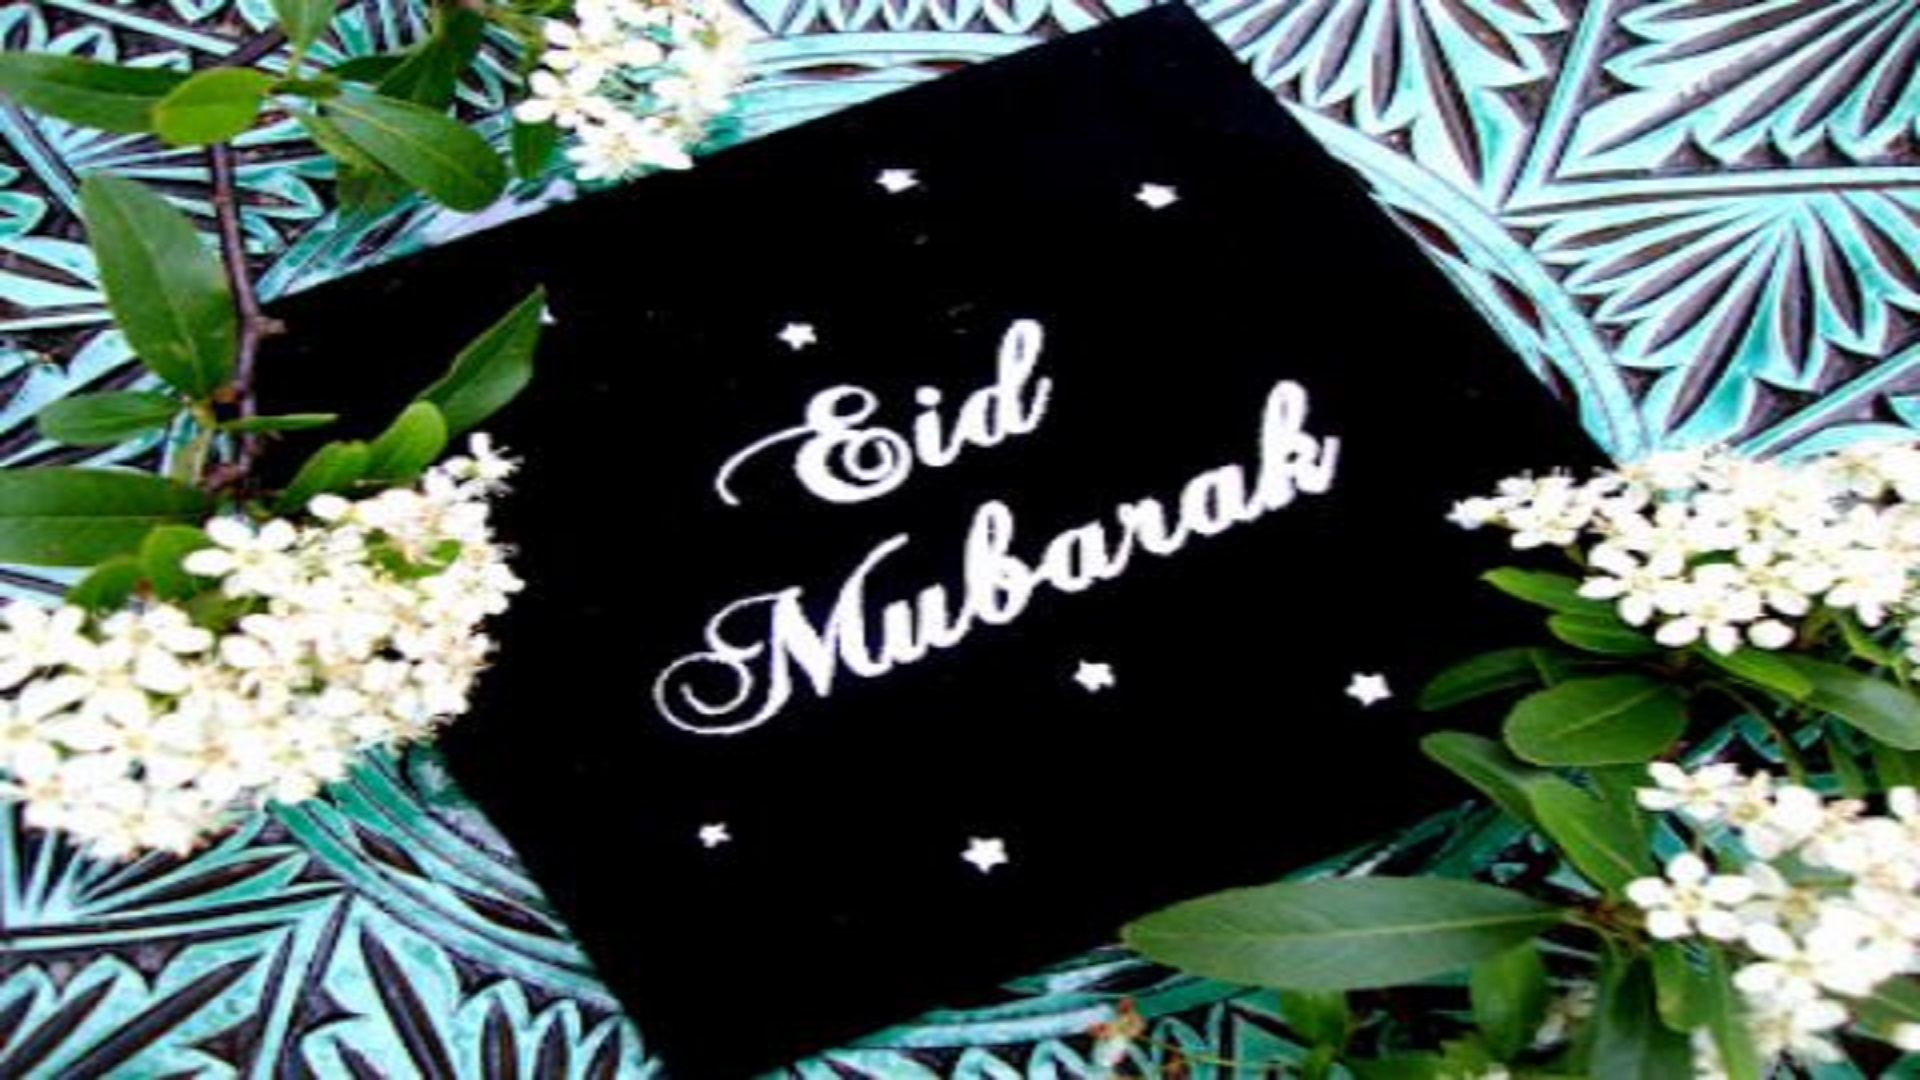 wishes eid mubarak mobile download background laptop photos free hd